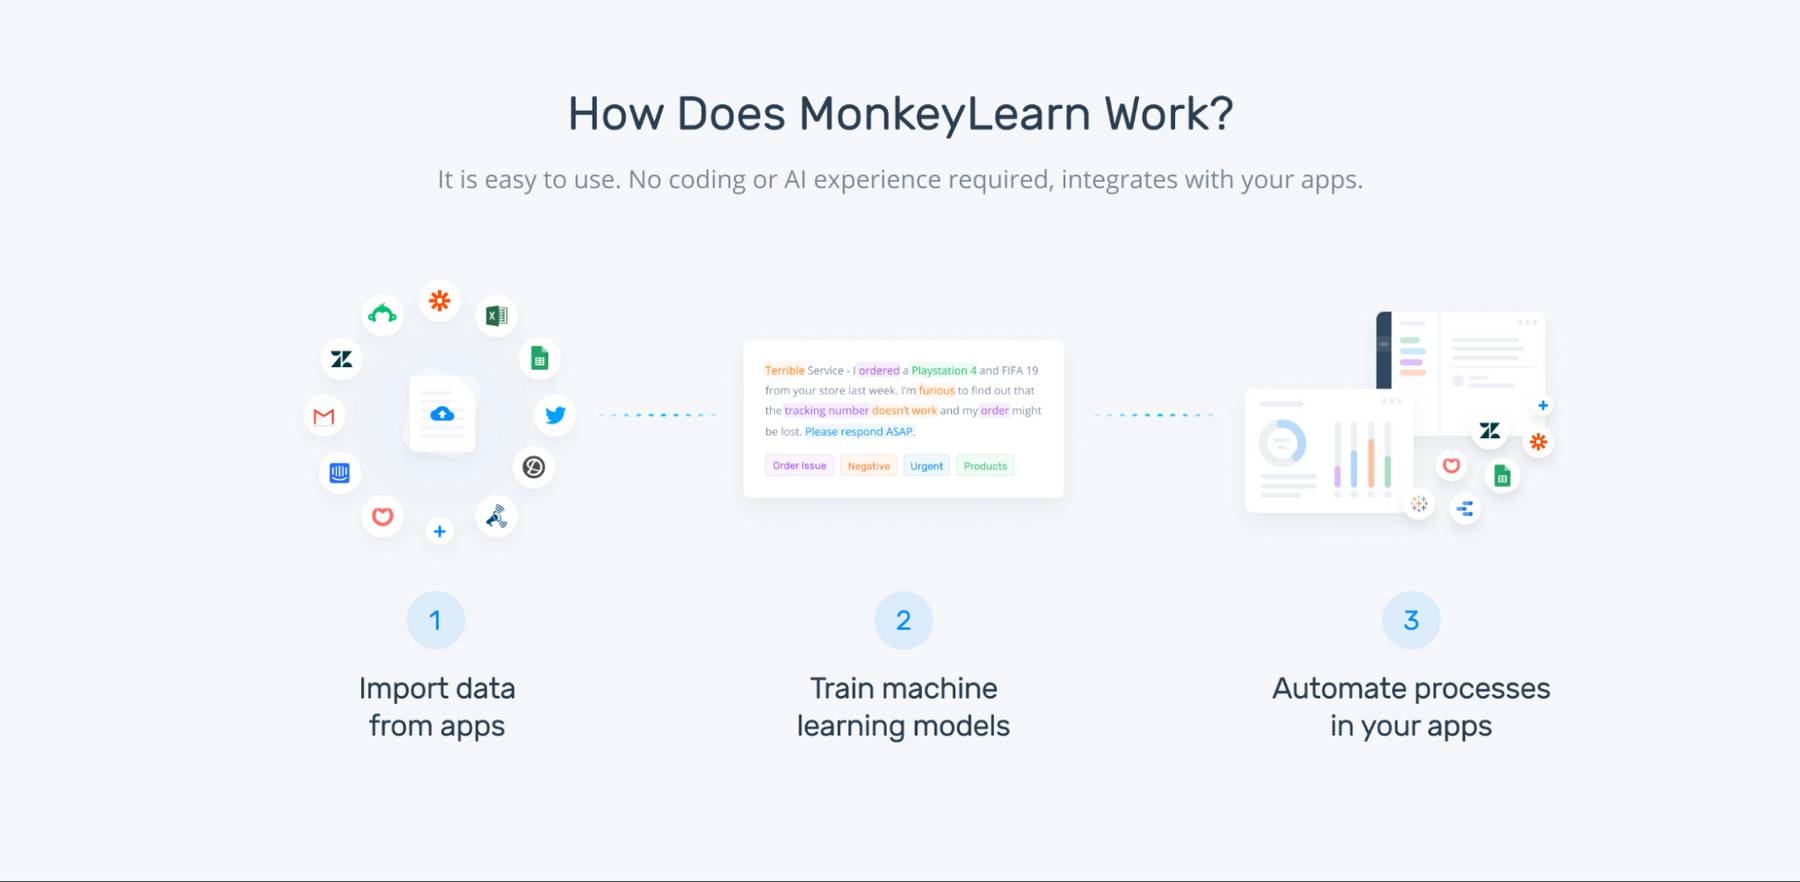 How MonkeyLearn's machine learning models work: Import data, train your model and analyze data, automate your processes.